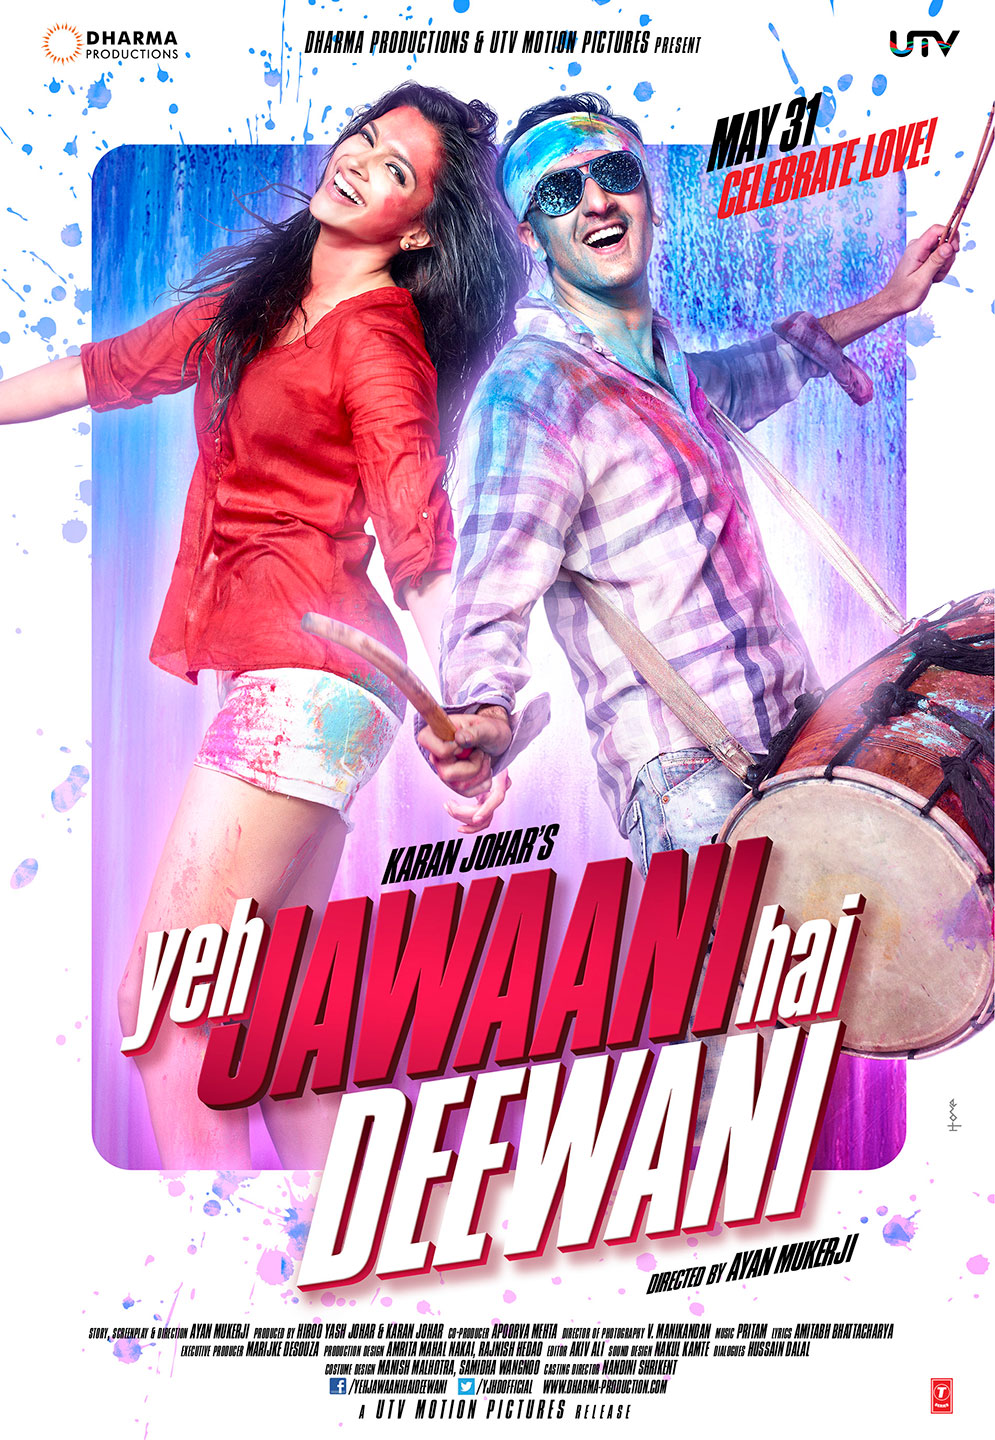 Poster 2 First Look: Deepika with Ranbir in Yeh Jawaani Hai Deewani x2!